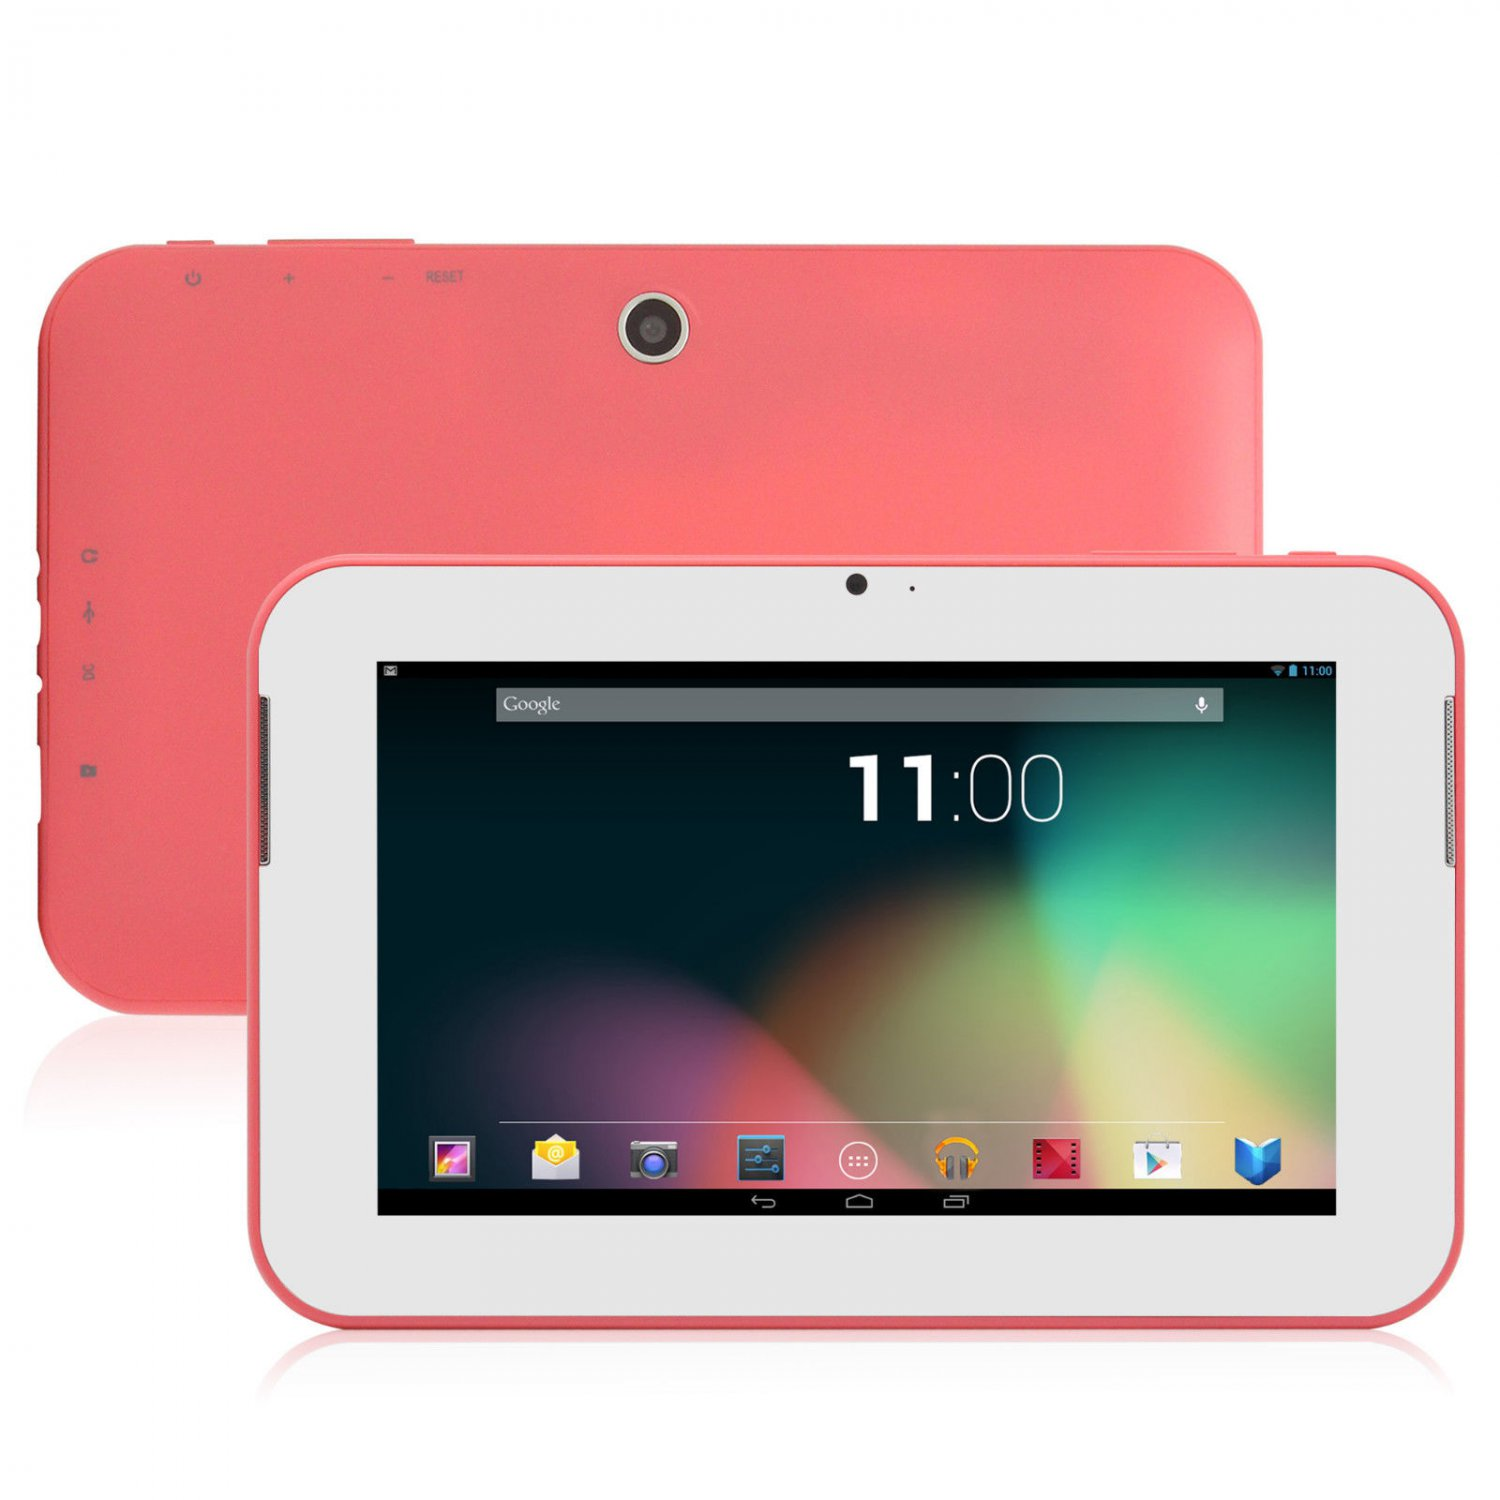 Brand New Pink 8GB Android Tablet PC (Android 4.2)